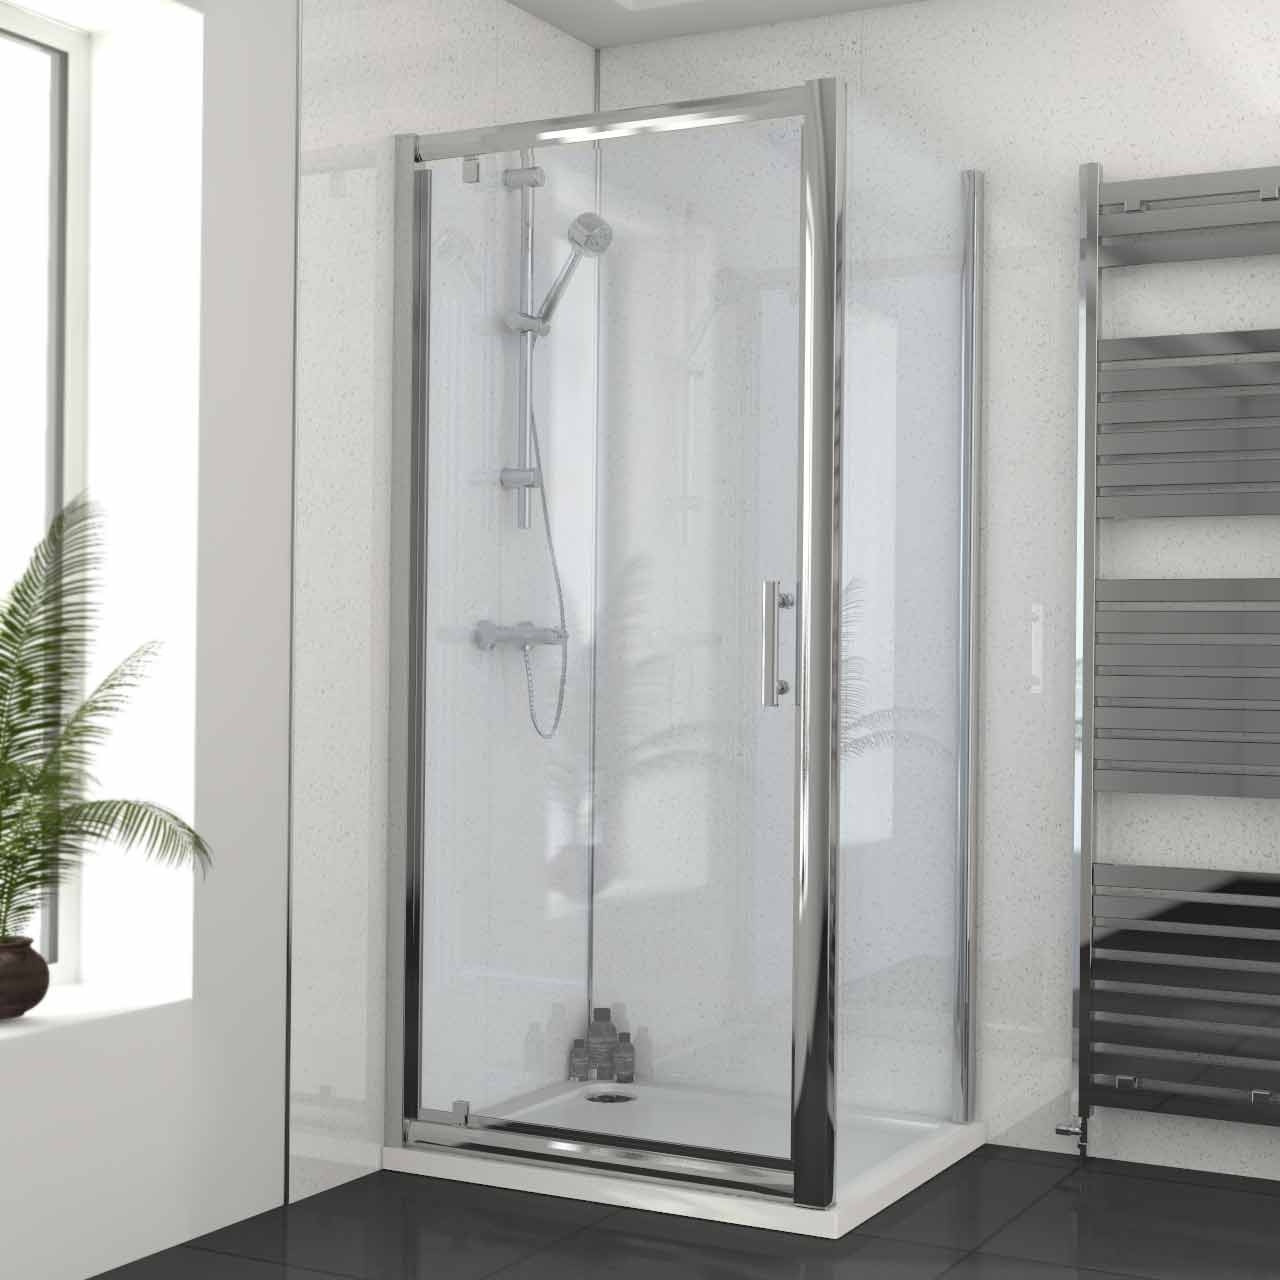 Series 6 900 x 760 Pivot Door Enclosure